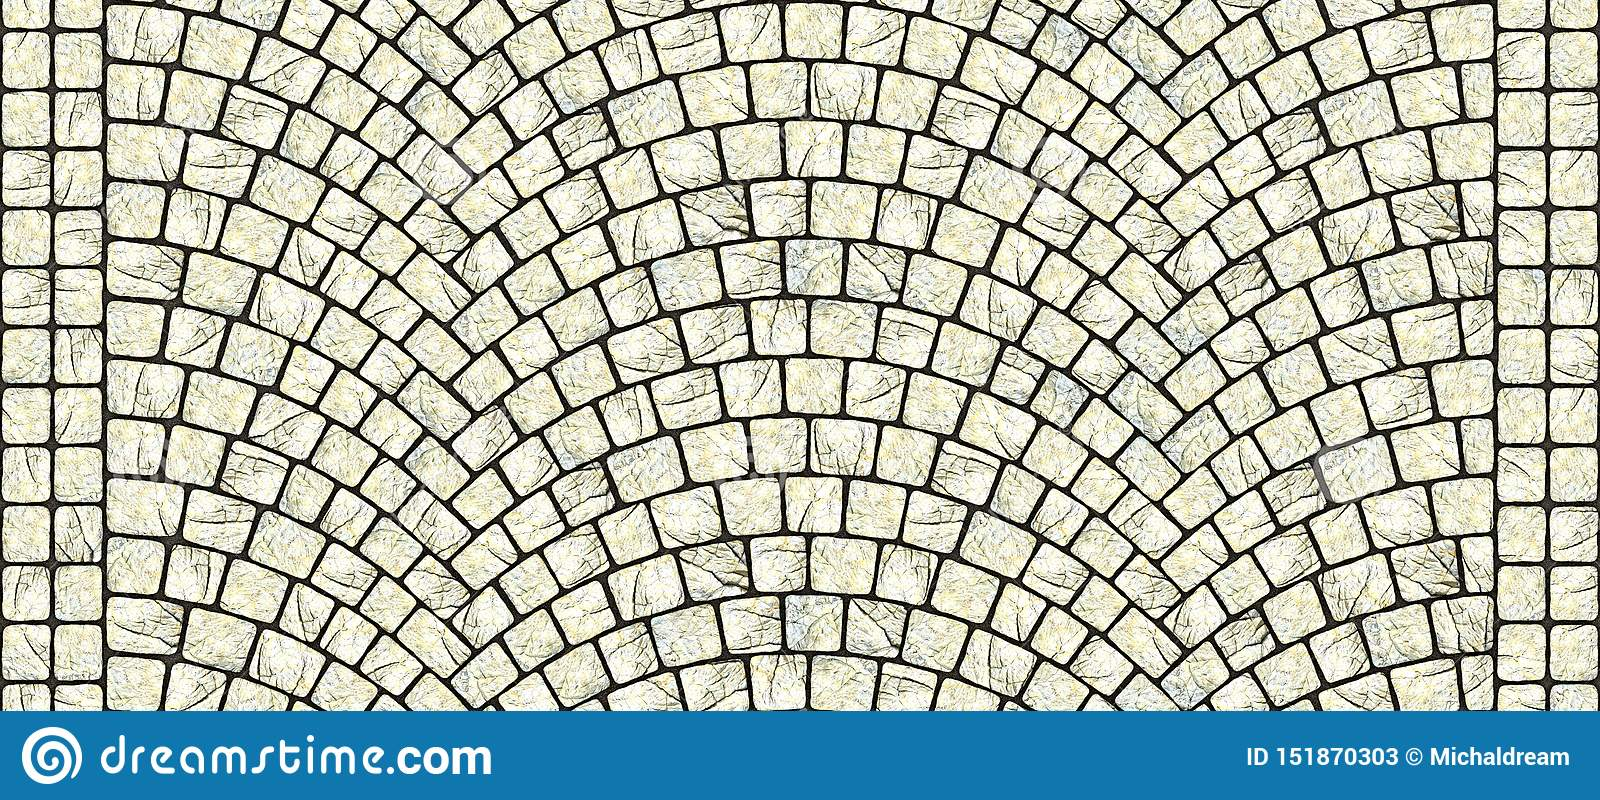 Road curved cobblestone texture 106